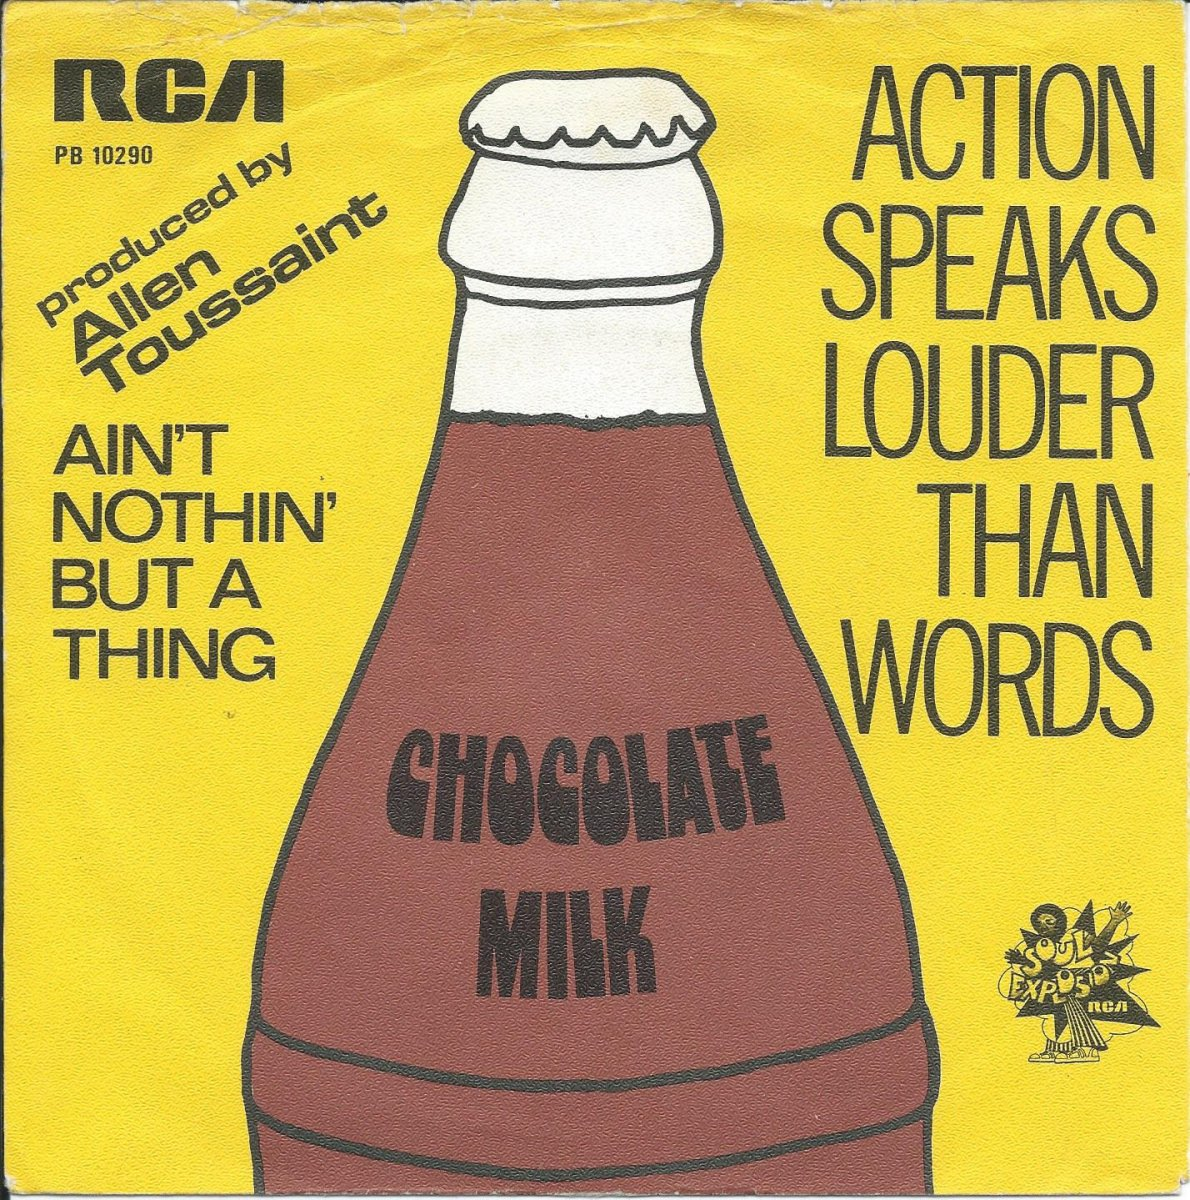 CHOCOLATE MILK / ACTION SPEAKS LOUDER THAN WORDS (7